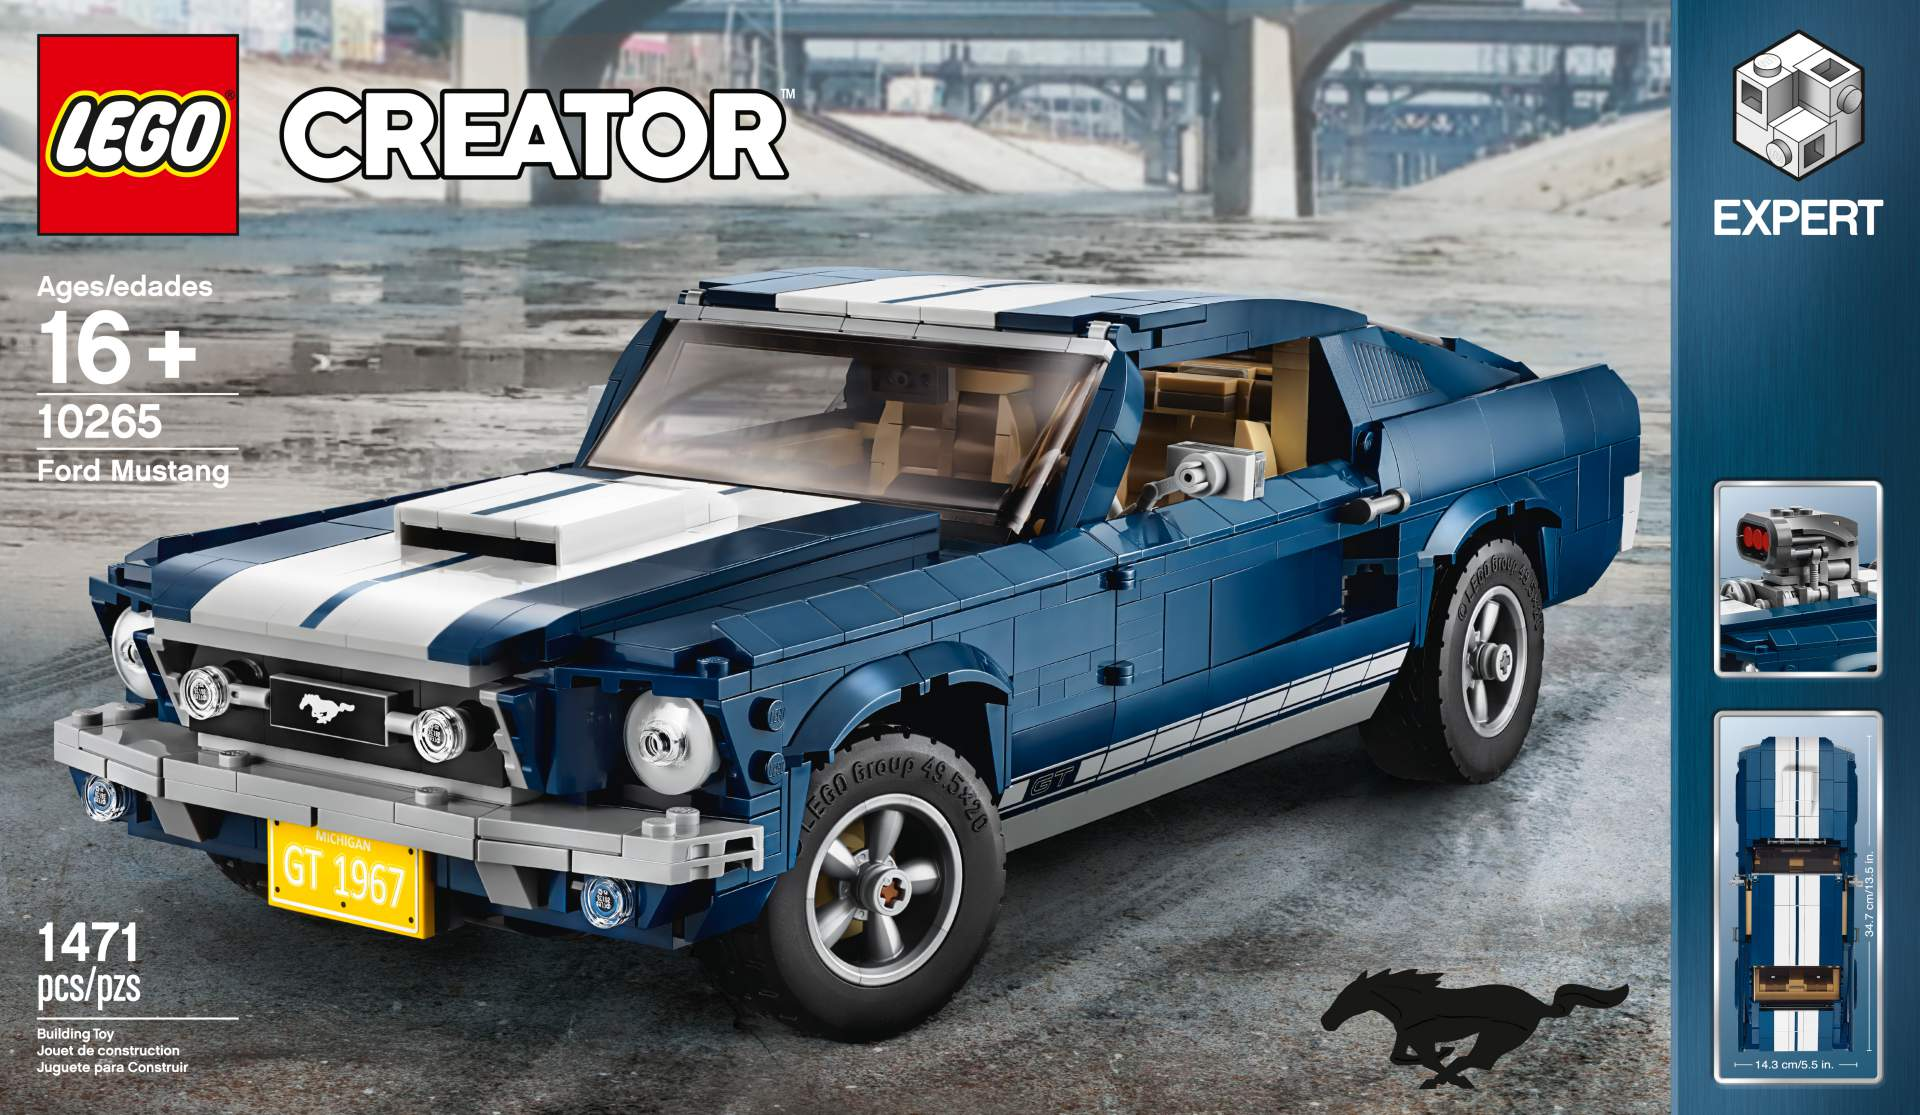 Ford Mustang GT 1967 Lego Creator Set (24)